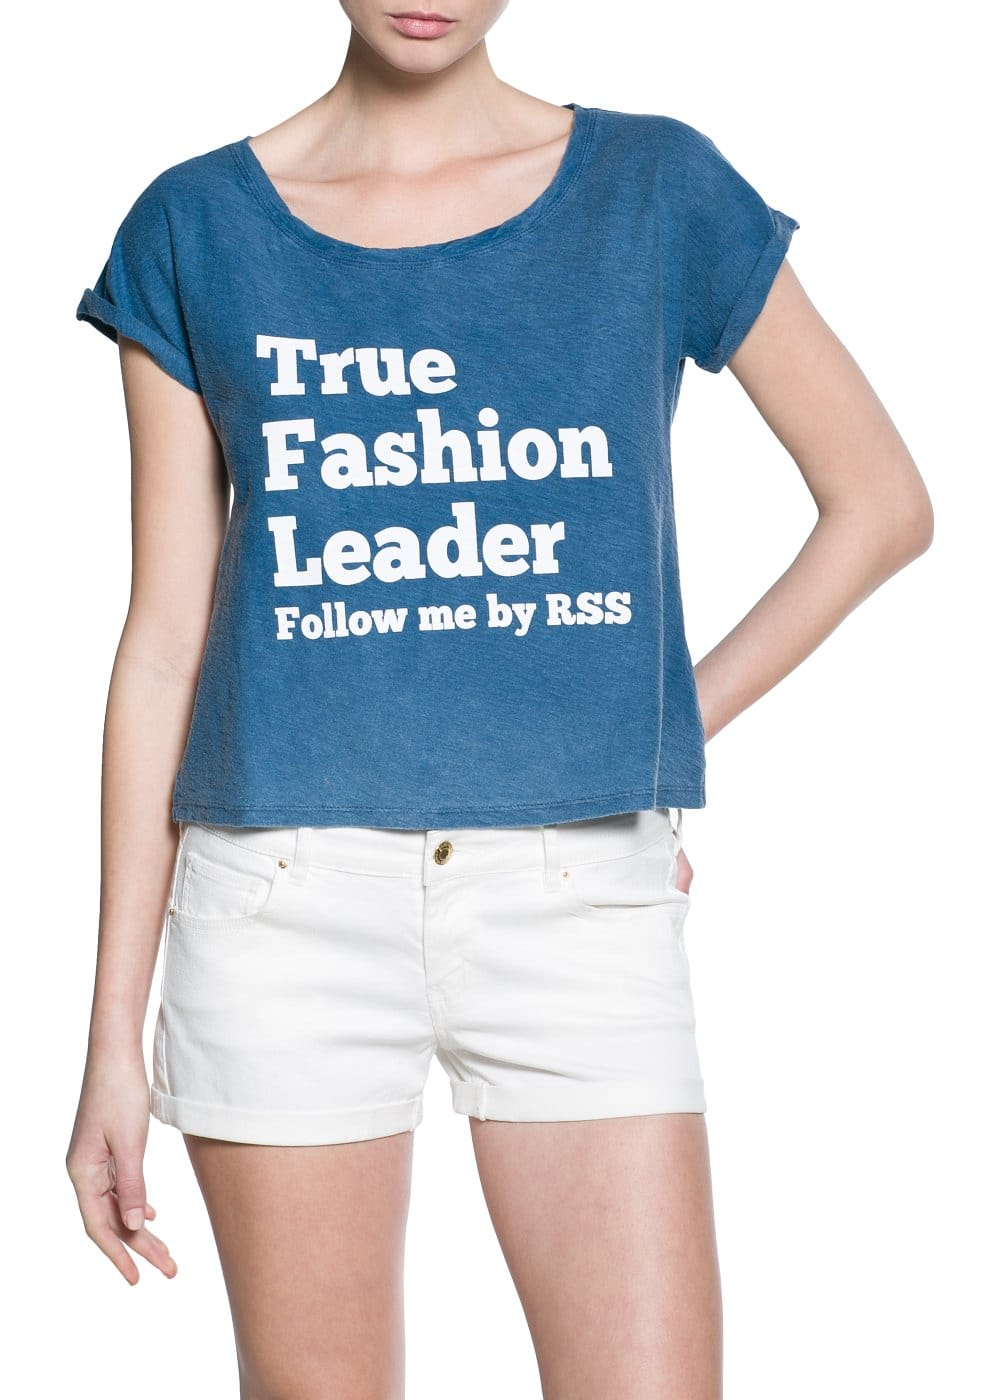 Fashion leader t-shirt